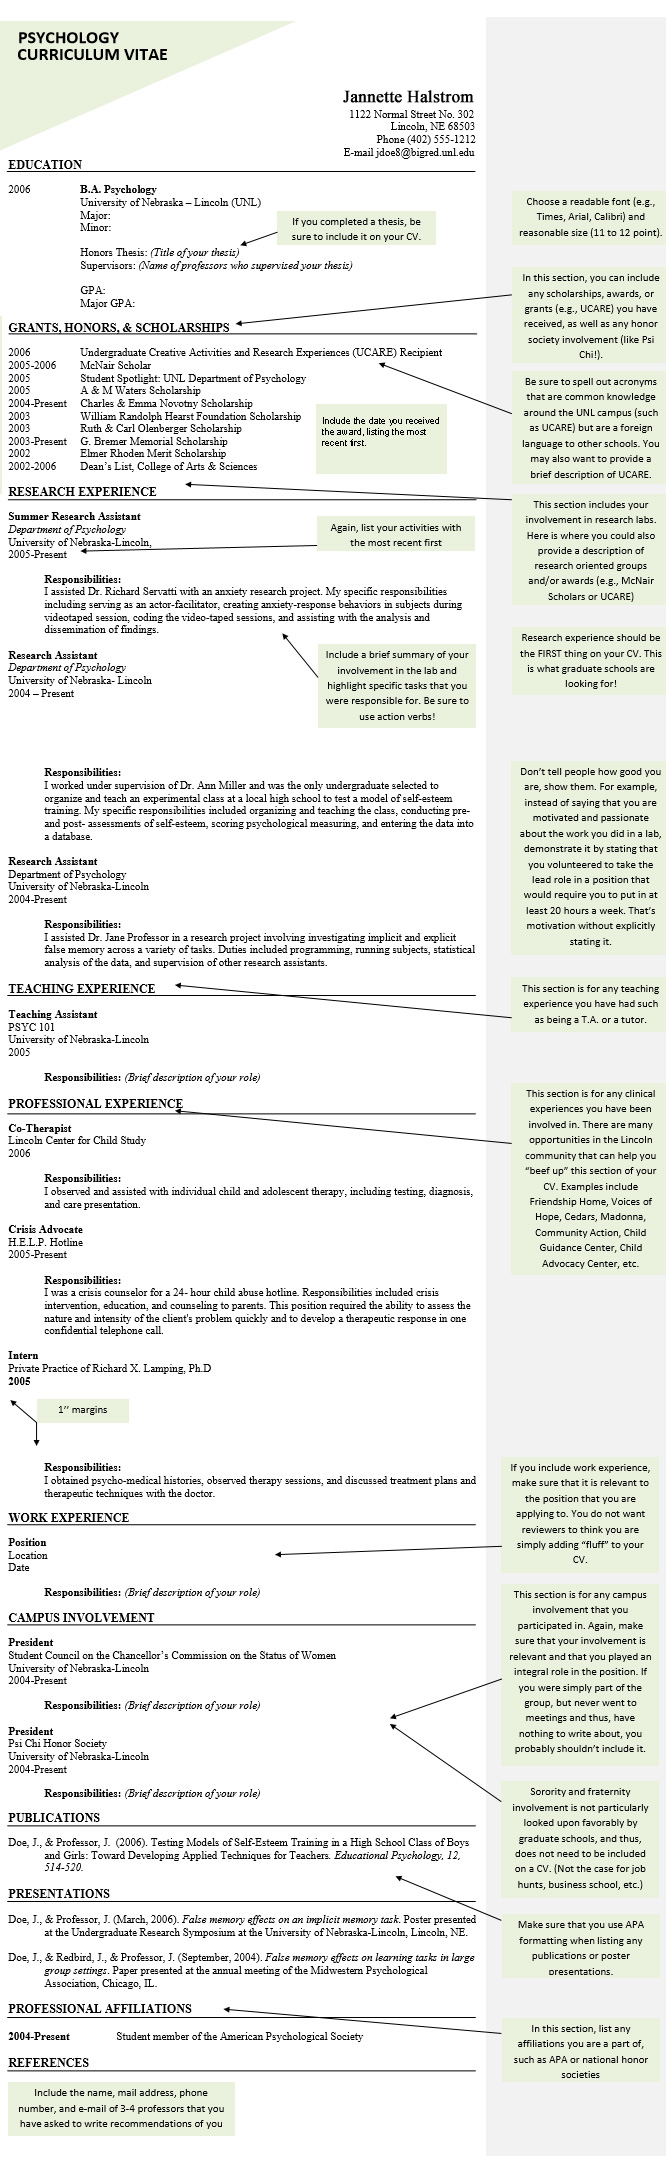 psychology cv and resume samples templates tips of counseling psychologist sample format Resume Resume Of A Counseling Psychologist